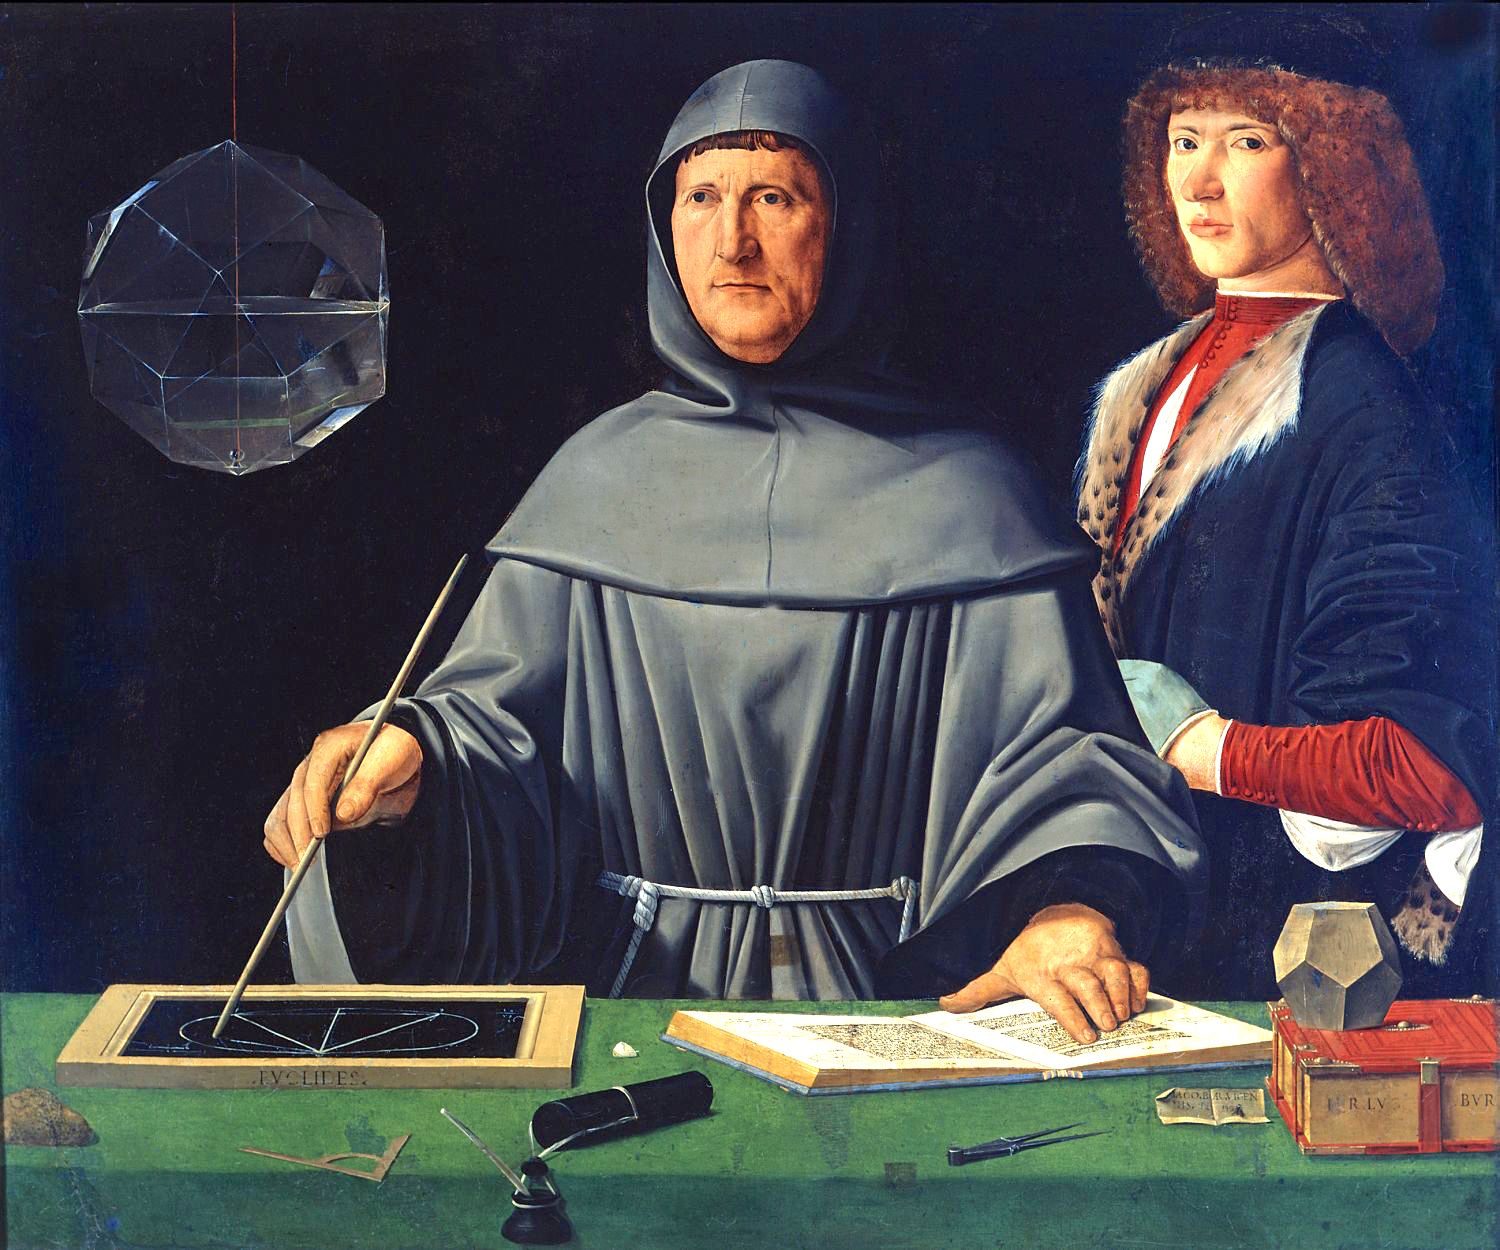 A painting of two men. The man at the center is looking off to his right while drawing a symbol with his right hand. His left hand is resting on a page in a book. He is wearing a robe with a hood. The man on the right is looking towards the front and is wearing a long-sleeve red shirt with a black jacket. Several writing utensils and books are on a table with a green tablecloth in the front of the image.